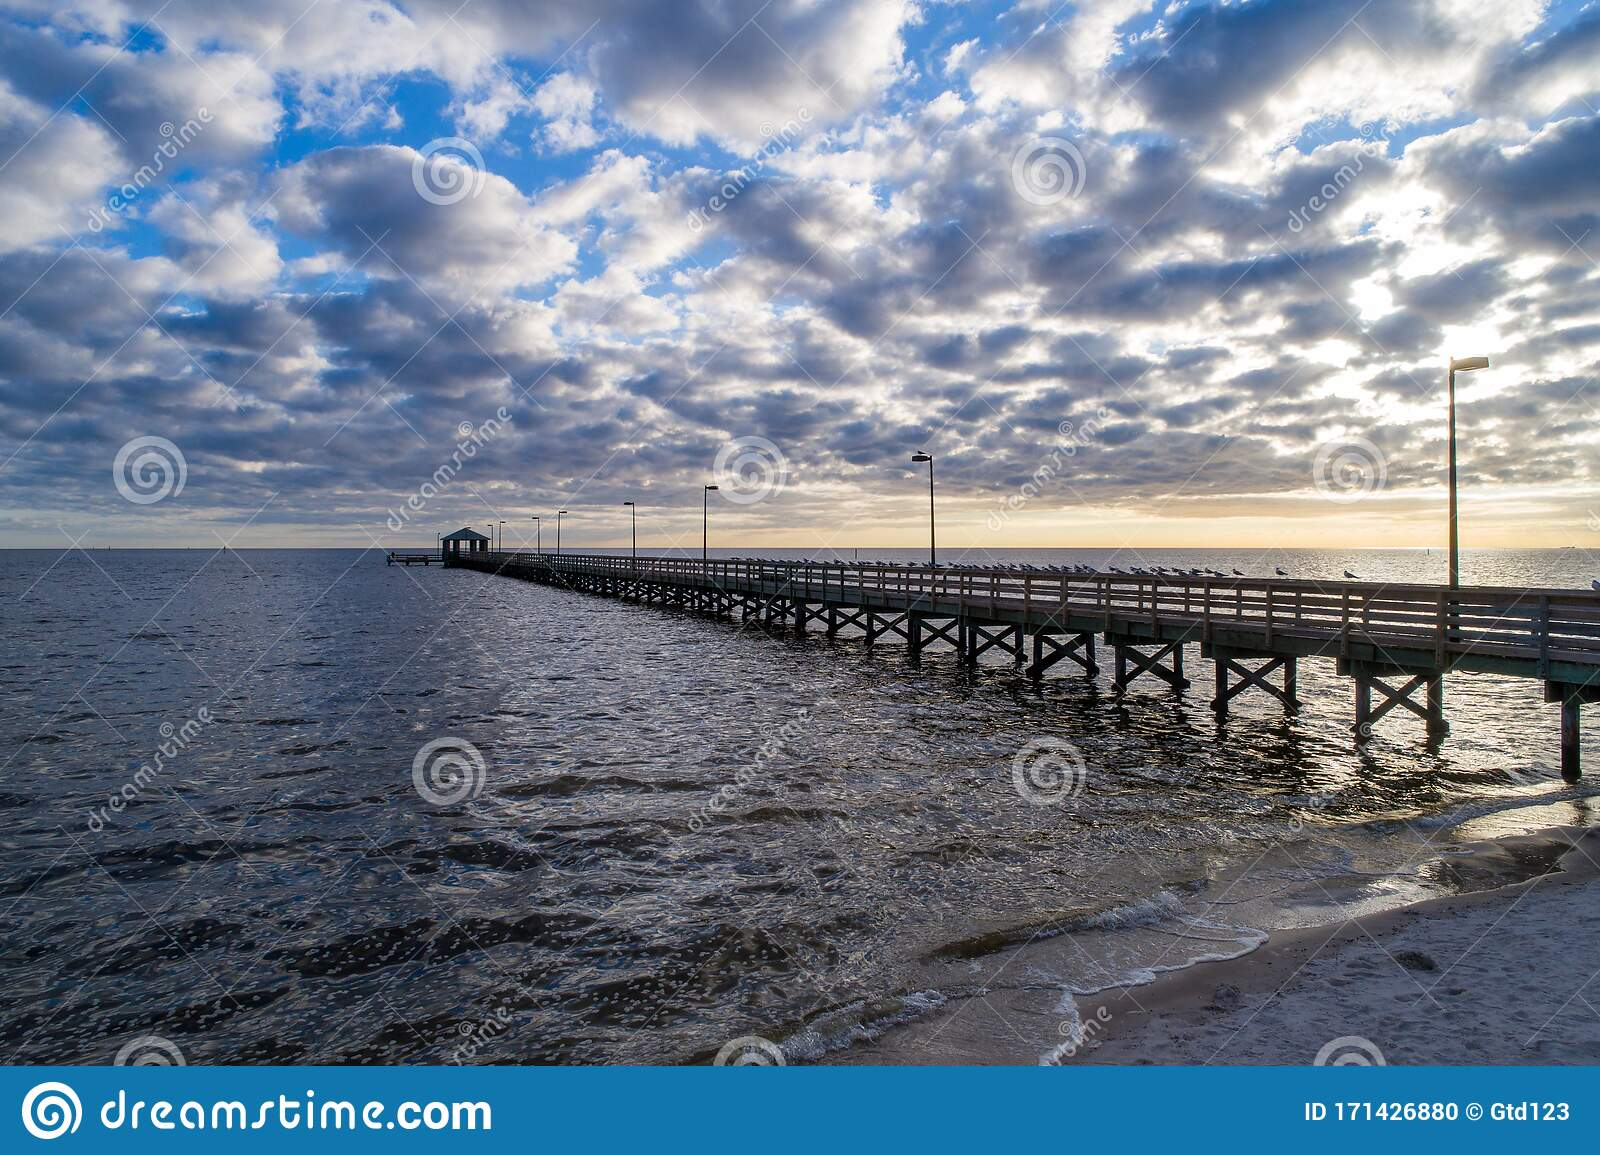 Biloxi Mississippi Beach Stock Photo Image Of Travel 171426880